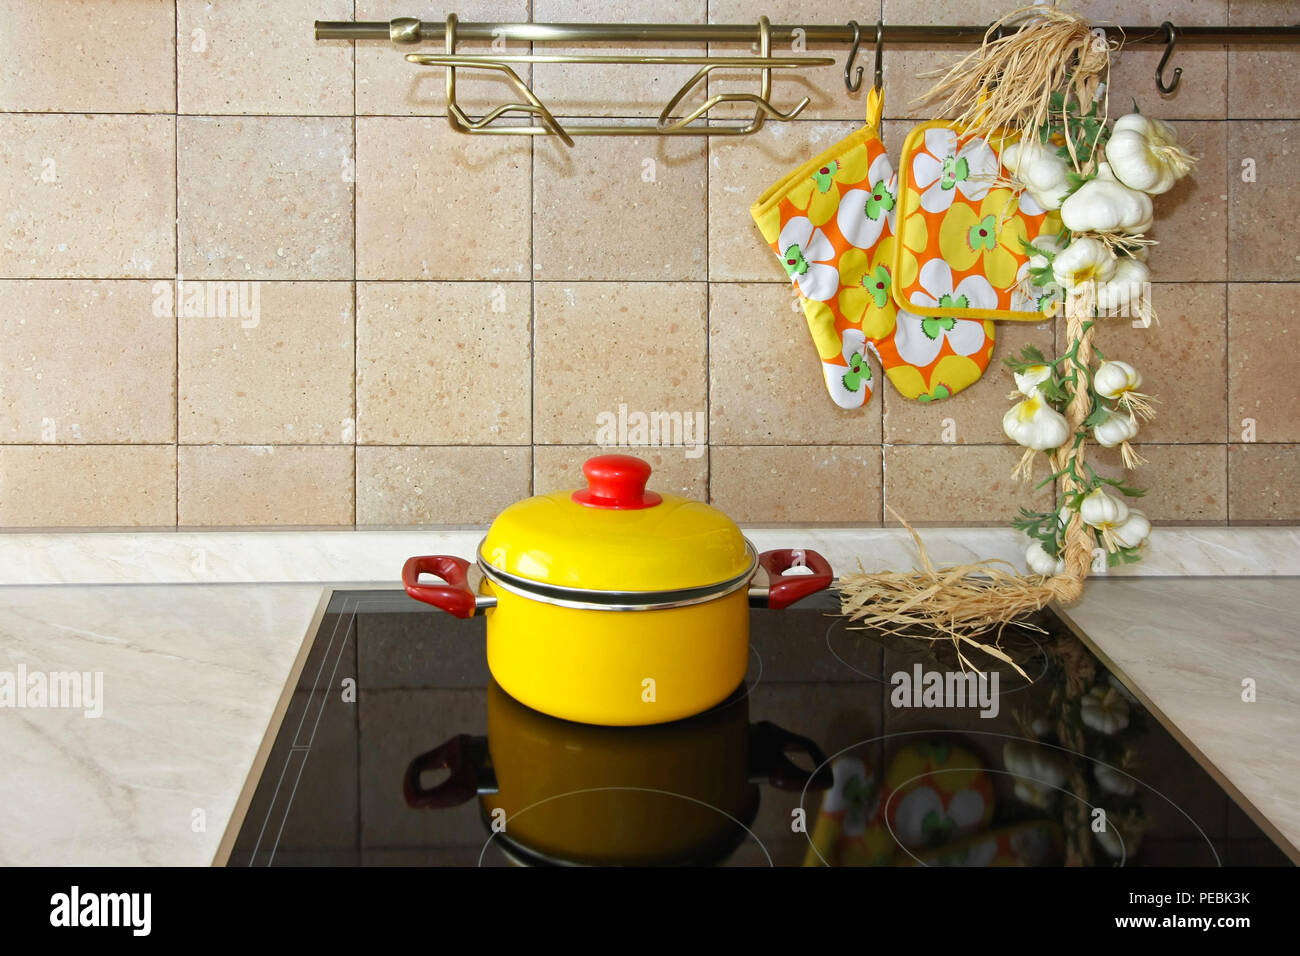 Yellow pot at ceramic stove in kitchen - Stock Image